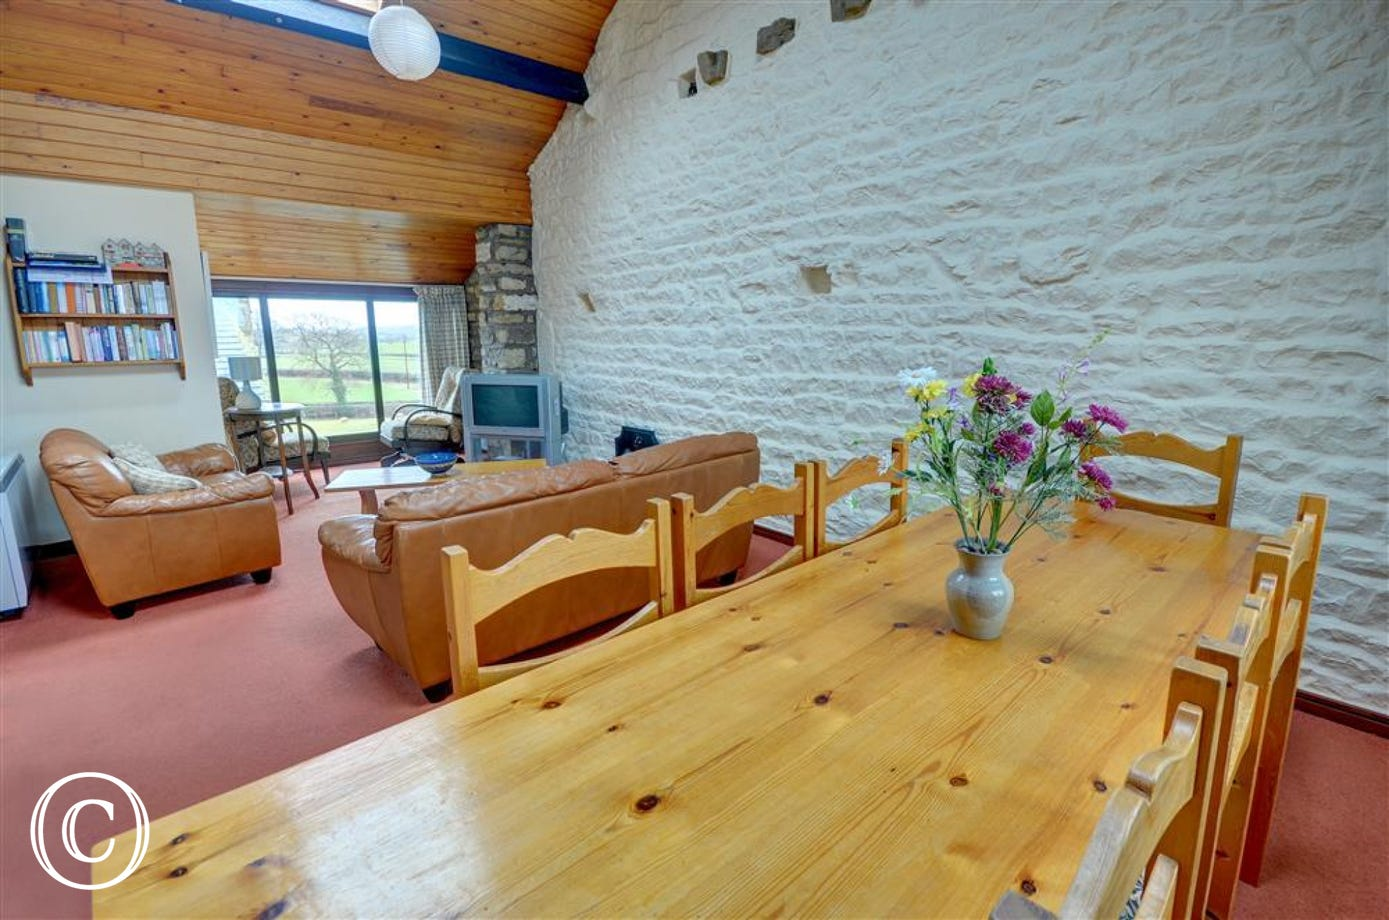 Dining area and lounge, with views over the open countryside.